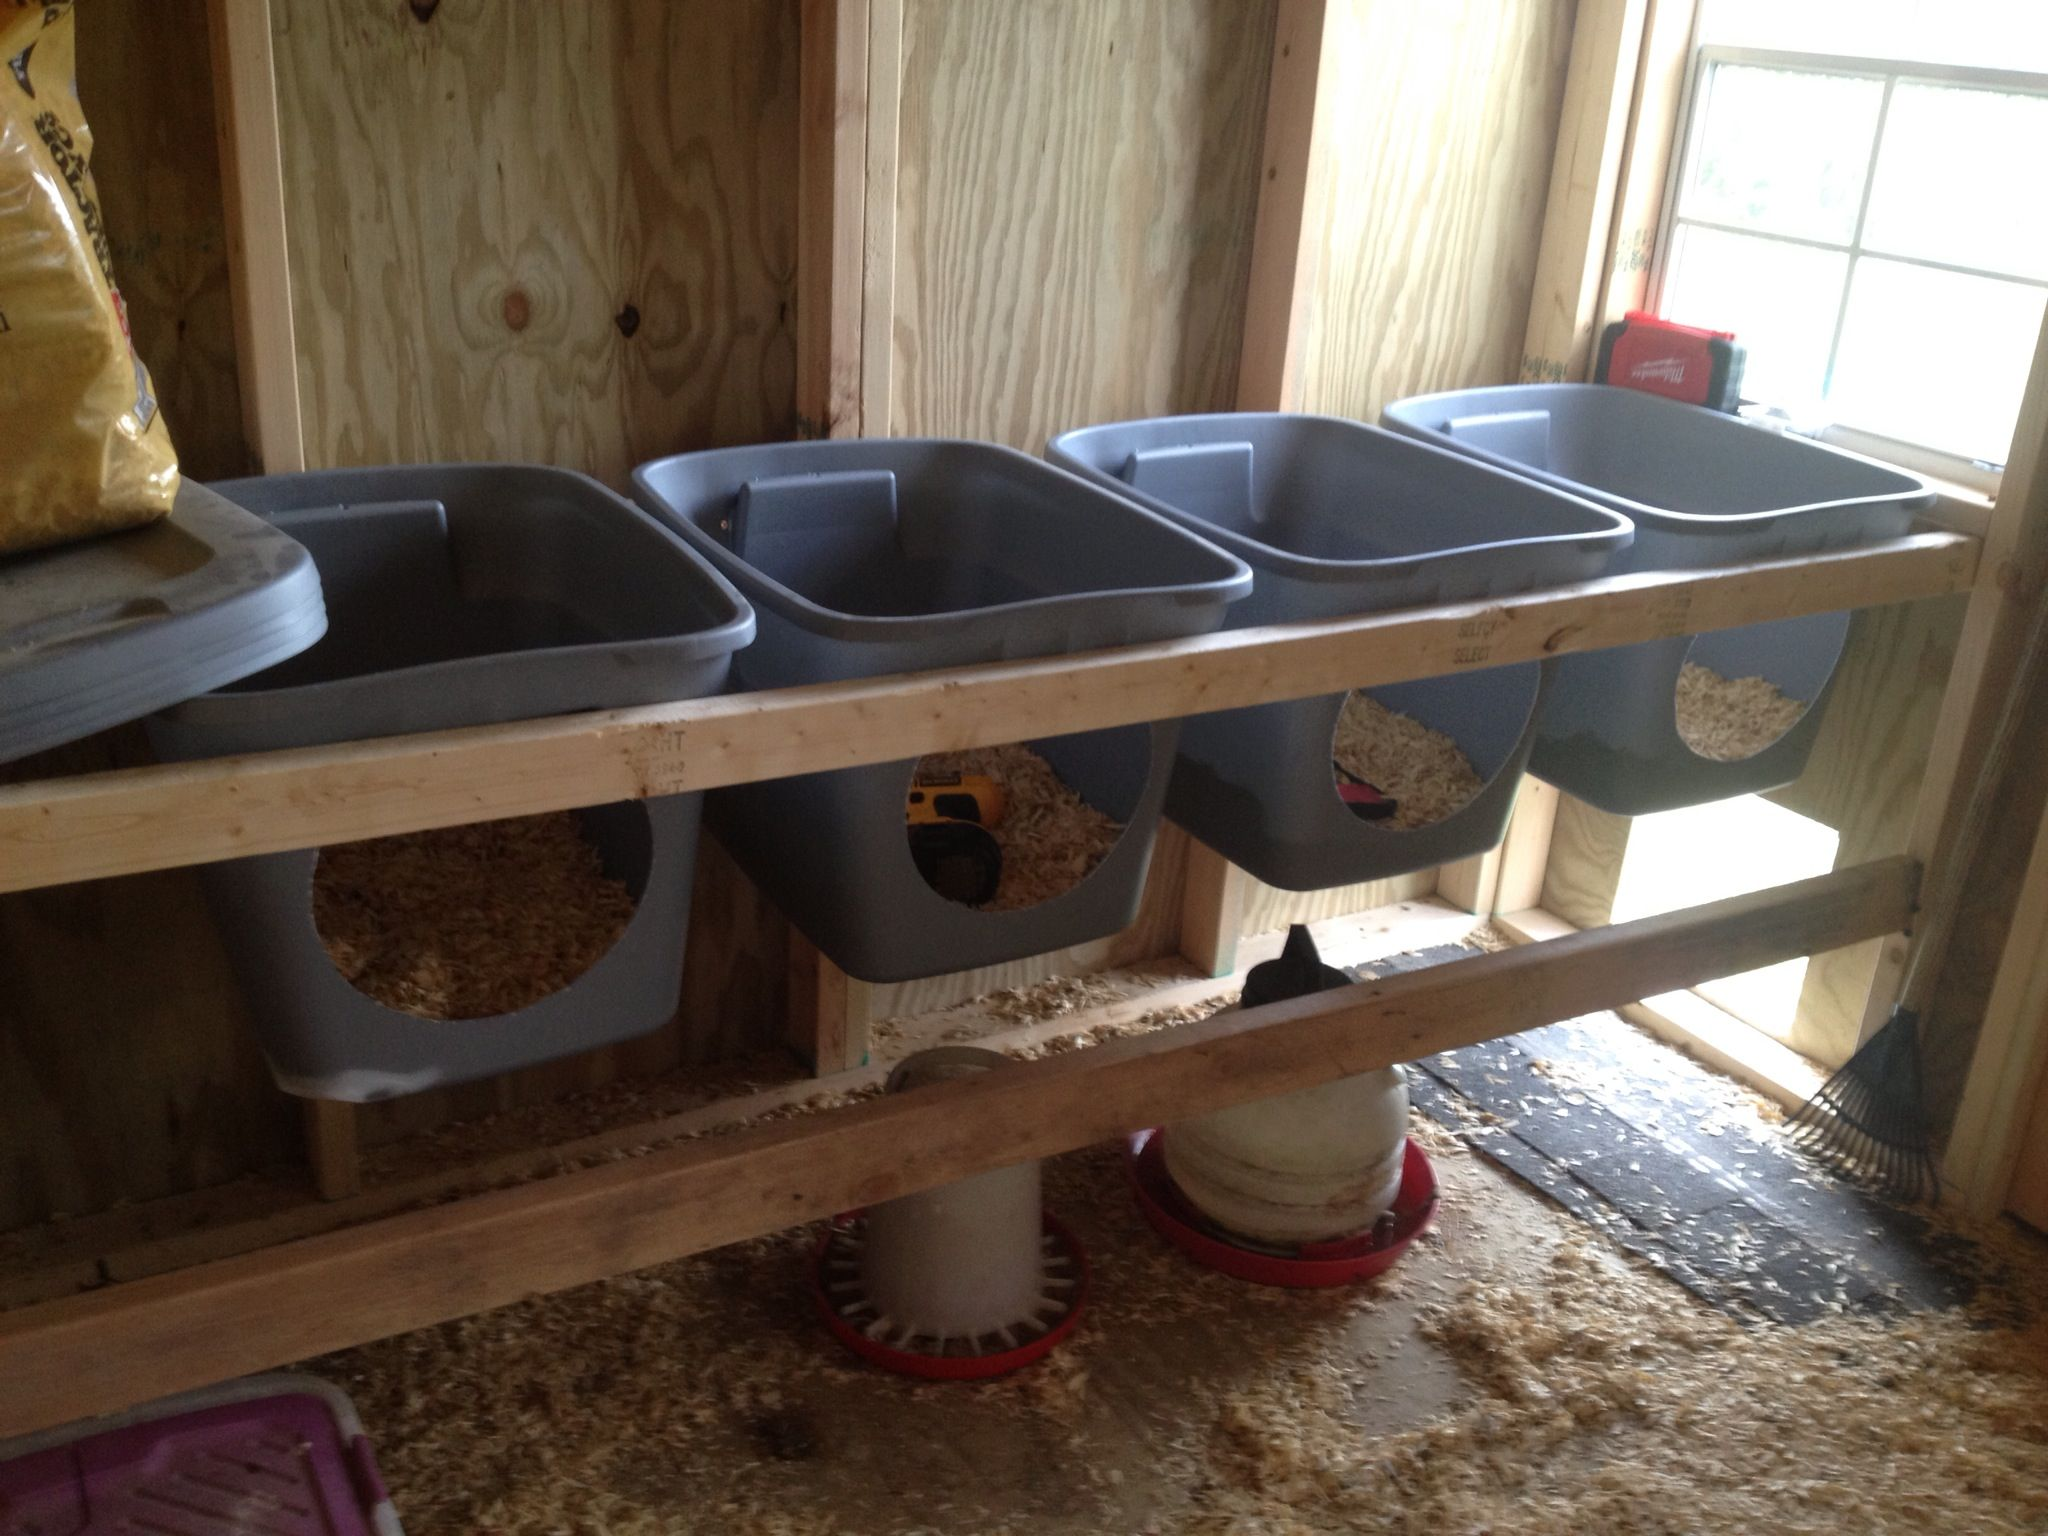 Nest boxes in my new chicken house made from Rubbermaid boxes ) & Nest boxes in my new chicken house made from Rubbermaid boxes ... Aboutintivar.Com